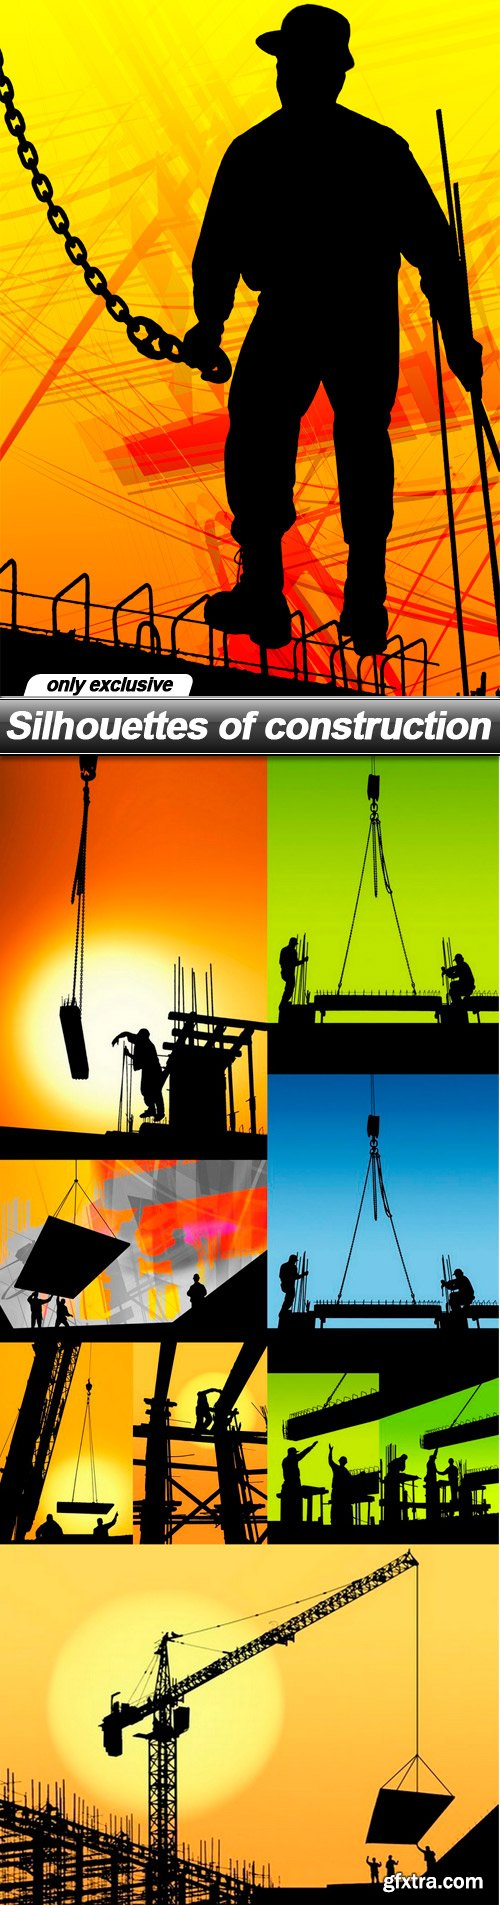 Silhouettes of construction - 10 UHQ JPEG